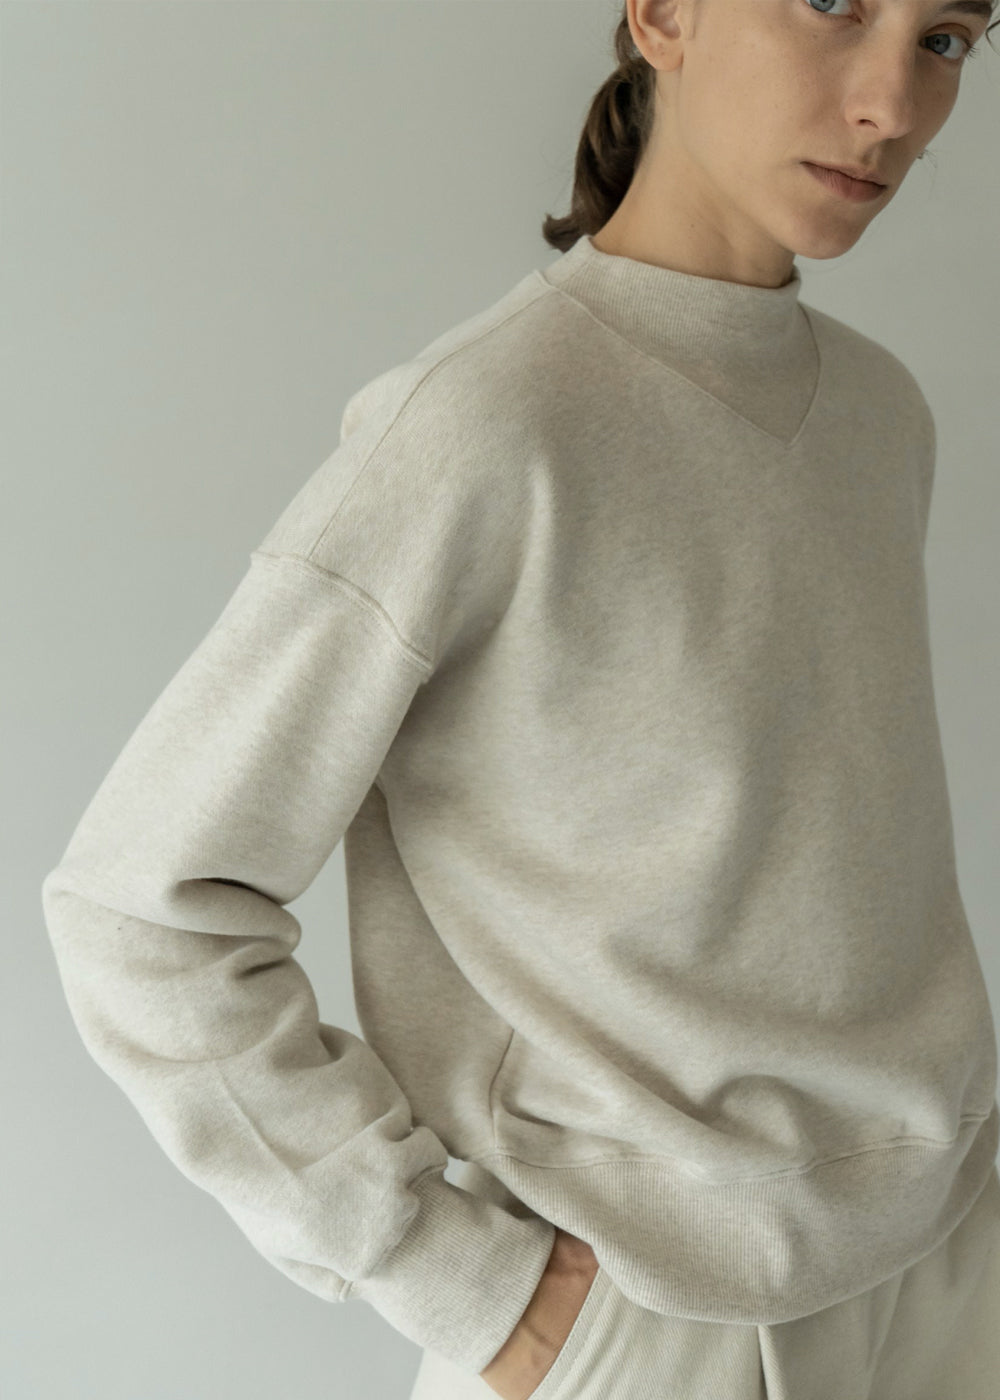 LOOSEFIT SWEATSHIRT OATMEAL